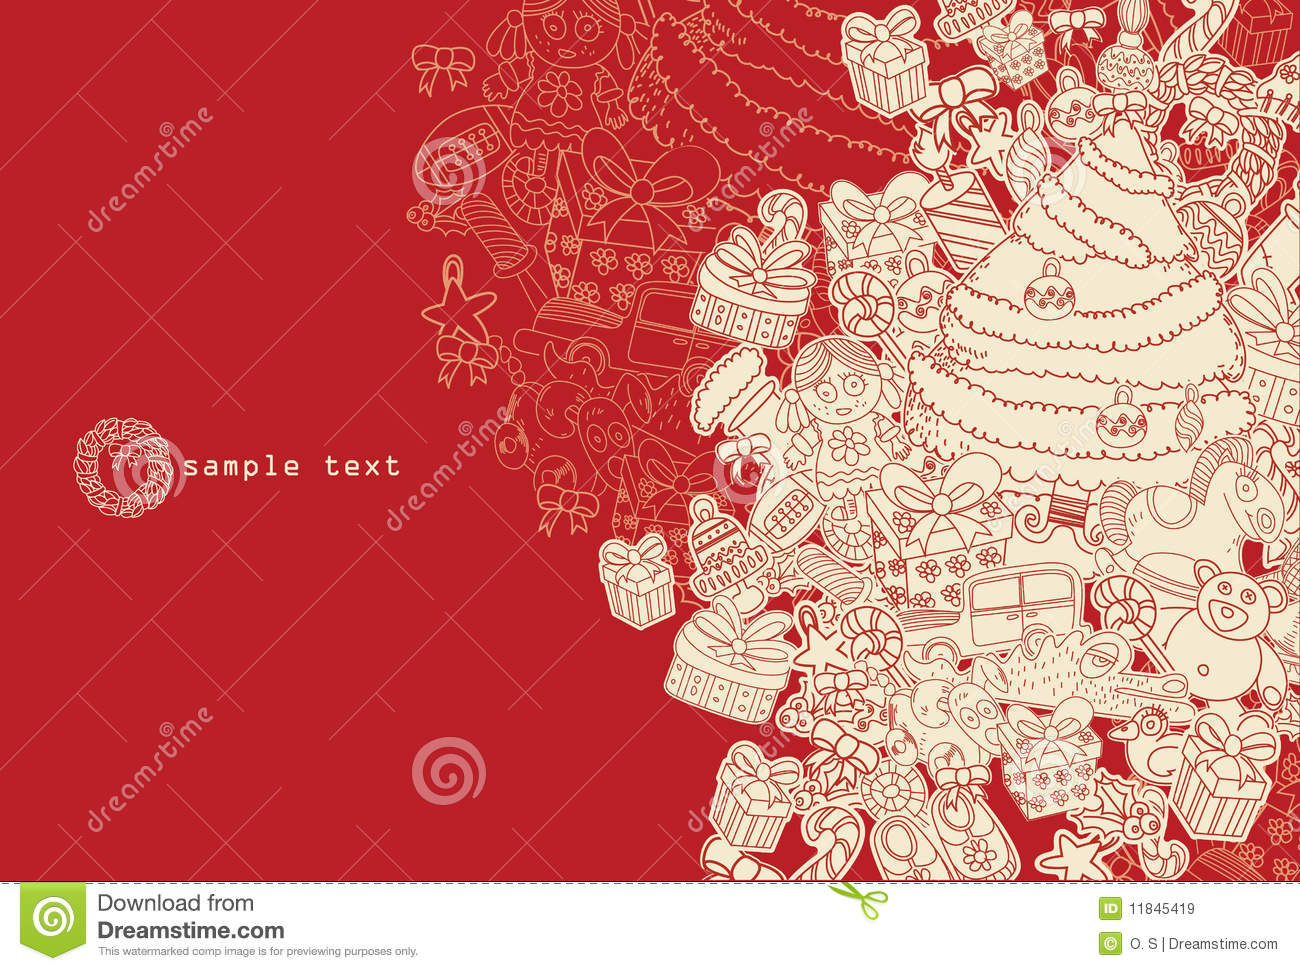 Line Drawing Xmas : Line drawing christmas theme red stock vector illustration of